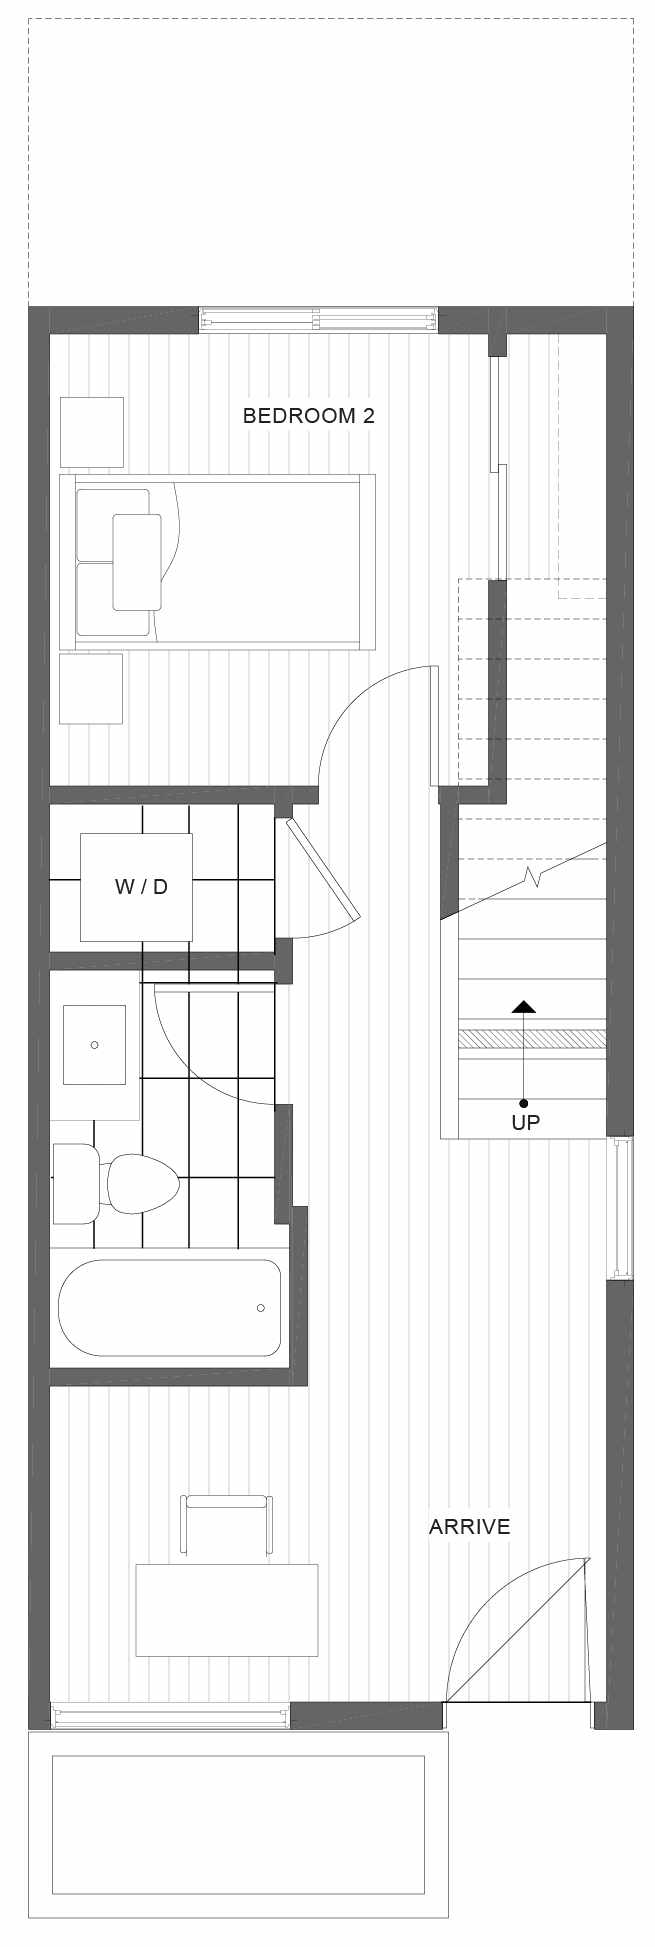 First Floor Plan of 1330 E Spring St in the Corazon Townhomes in Capitol Hill